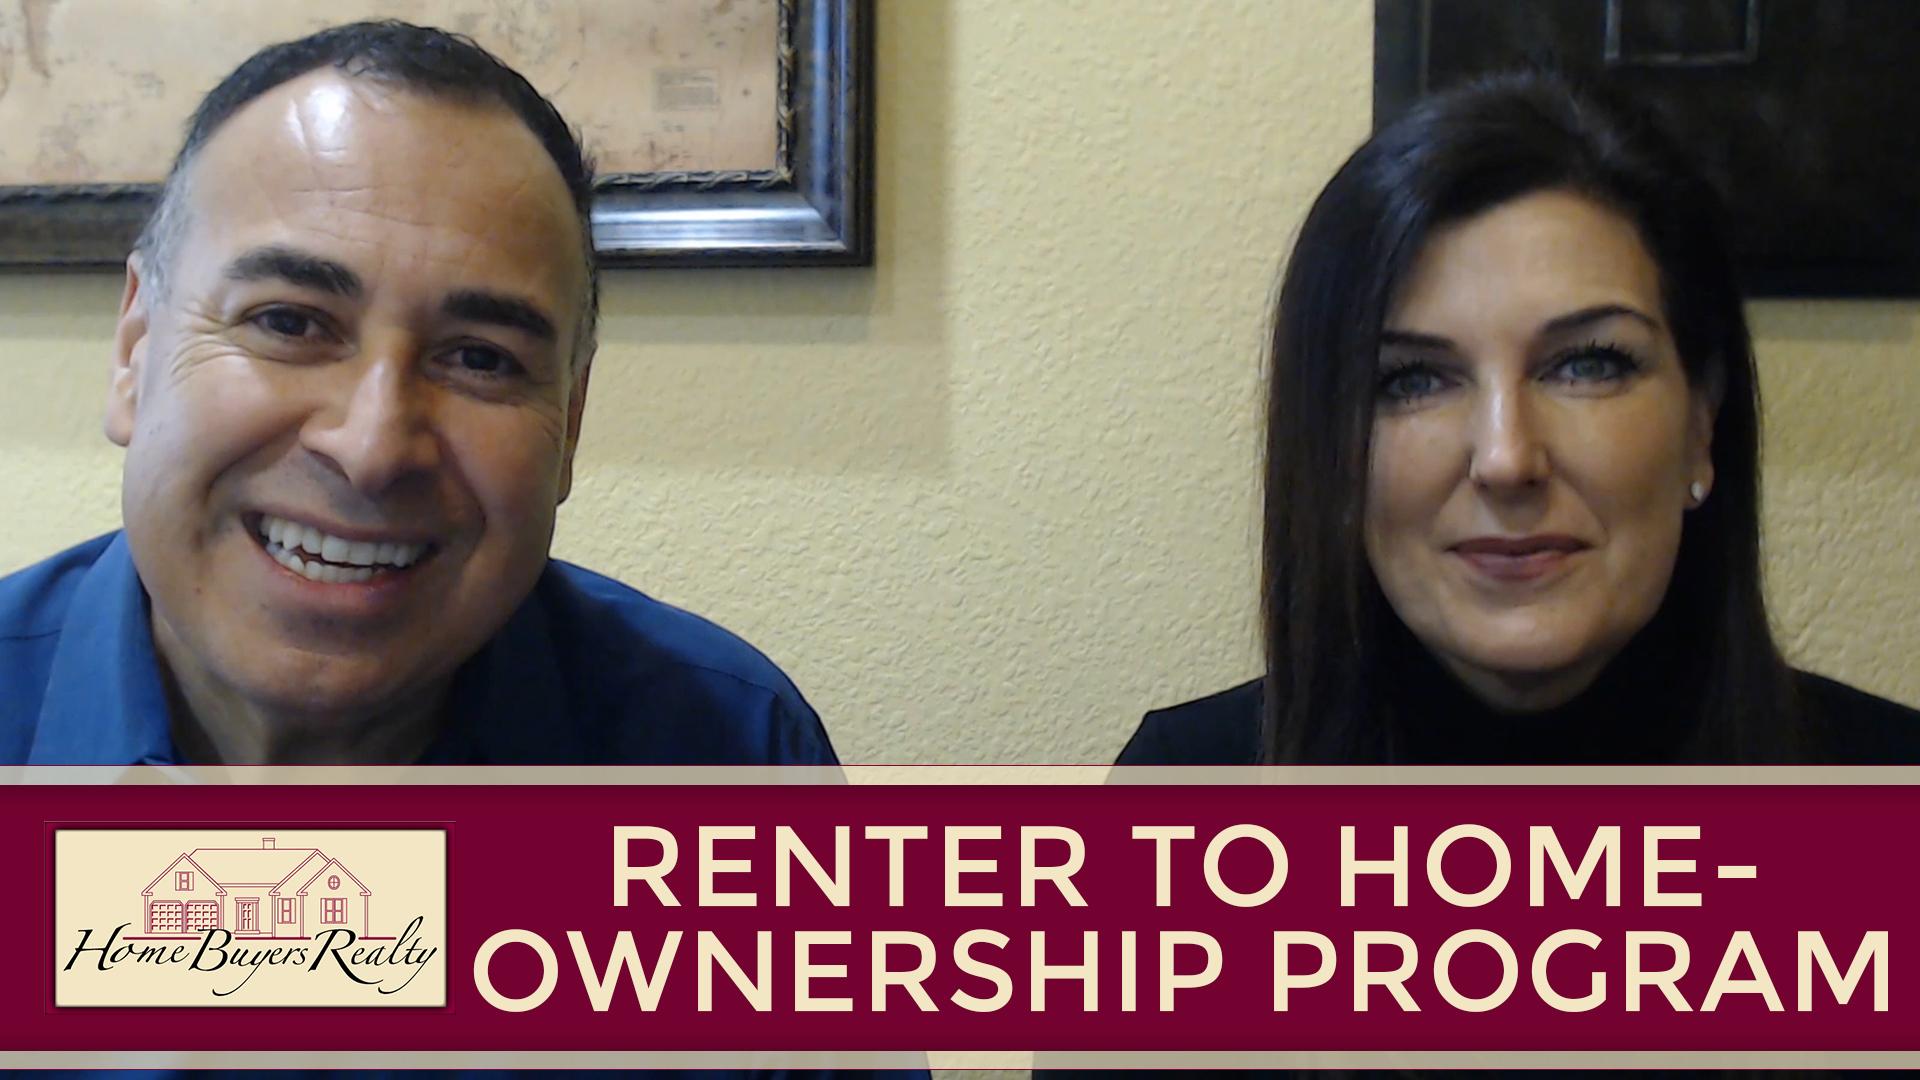 Introducing Our Renter to Homeownership Program